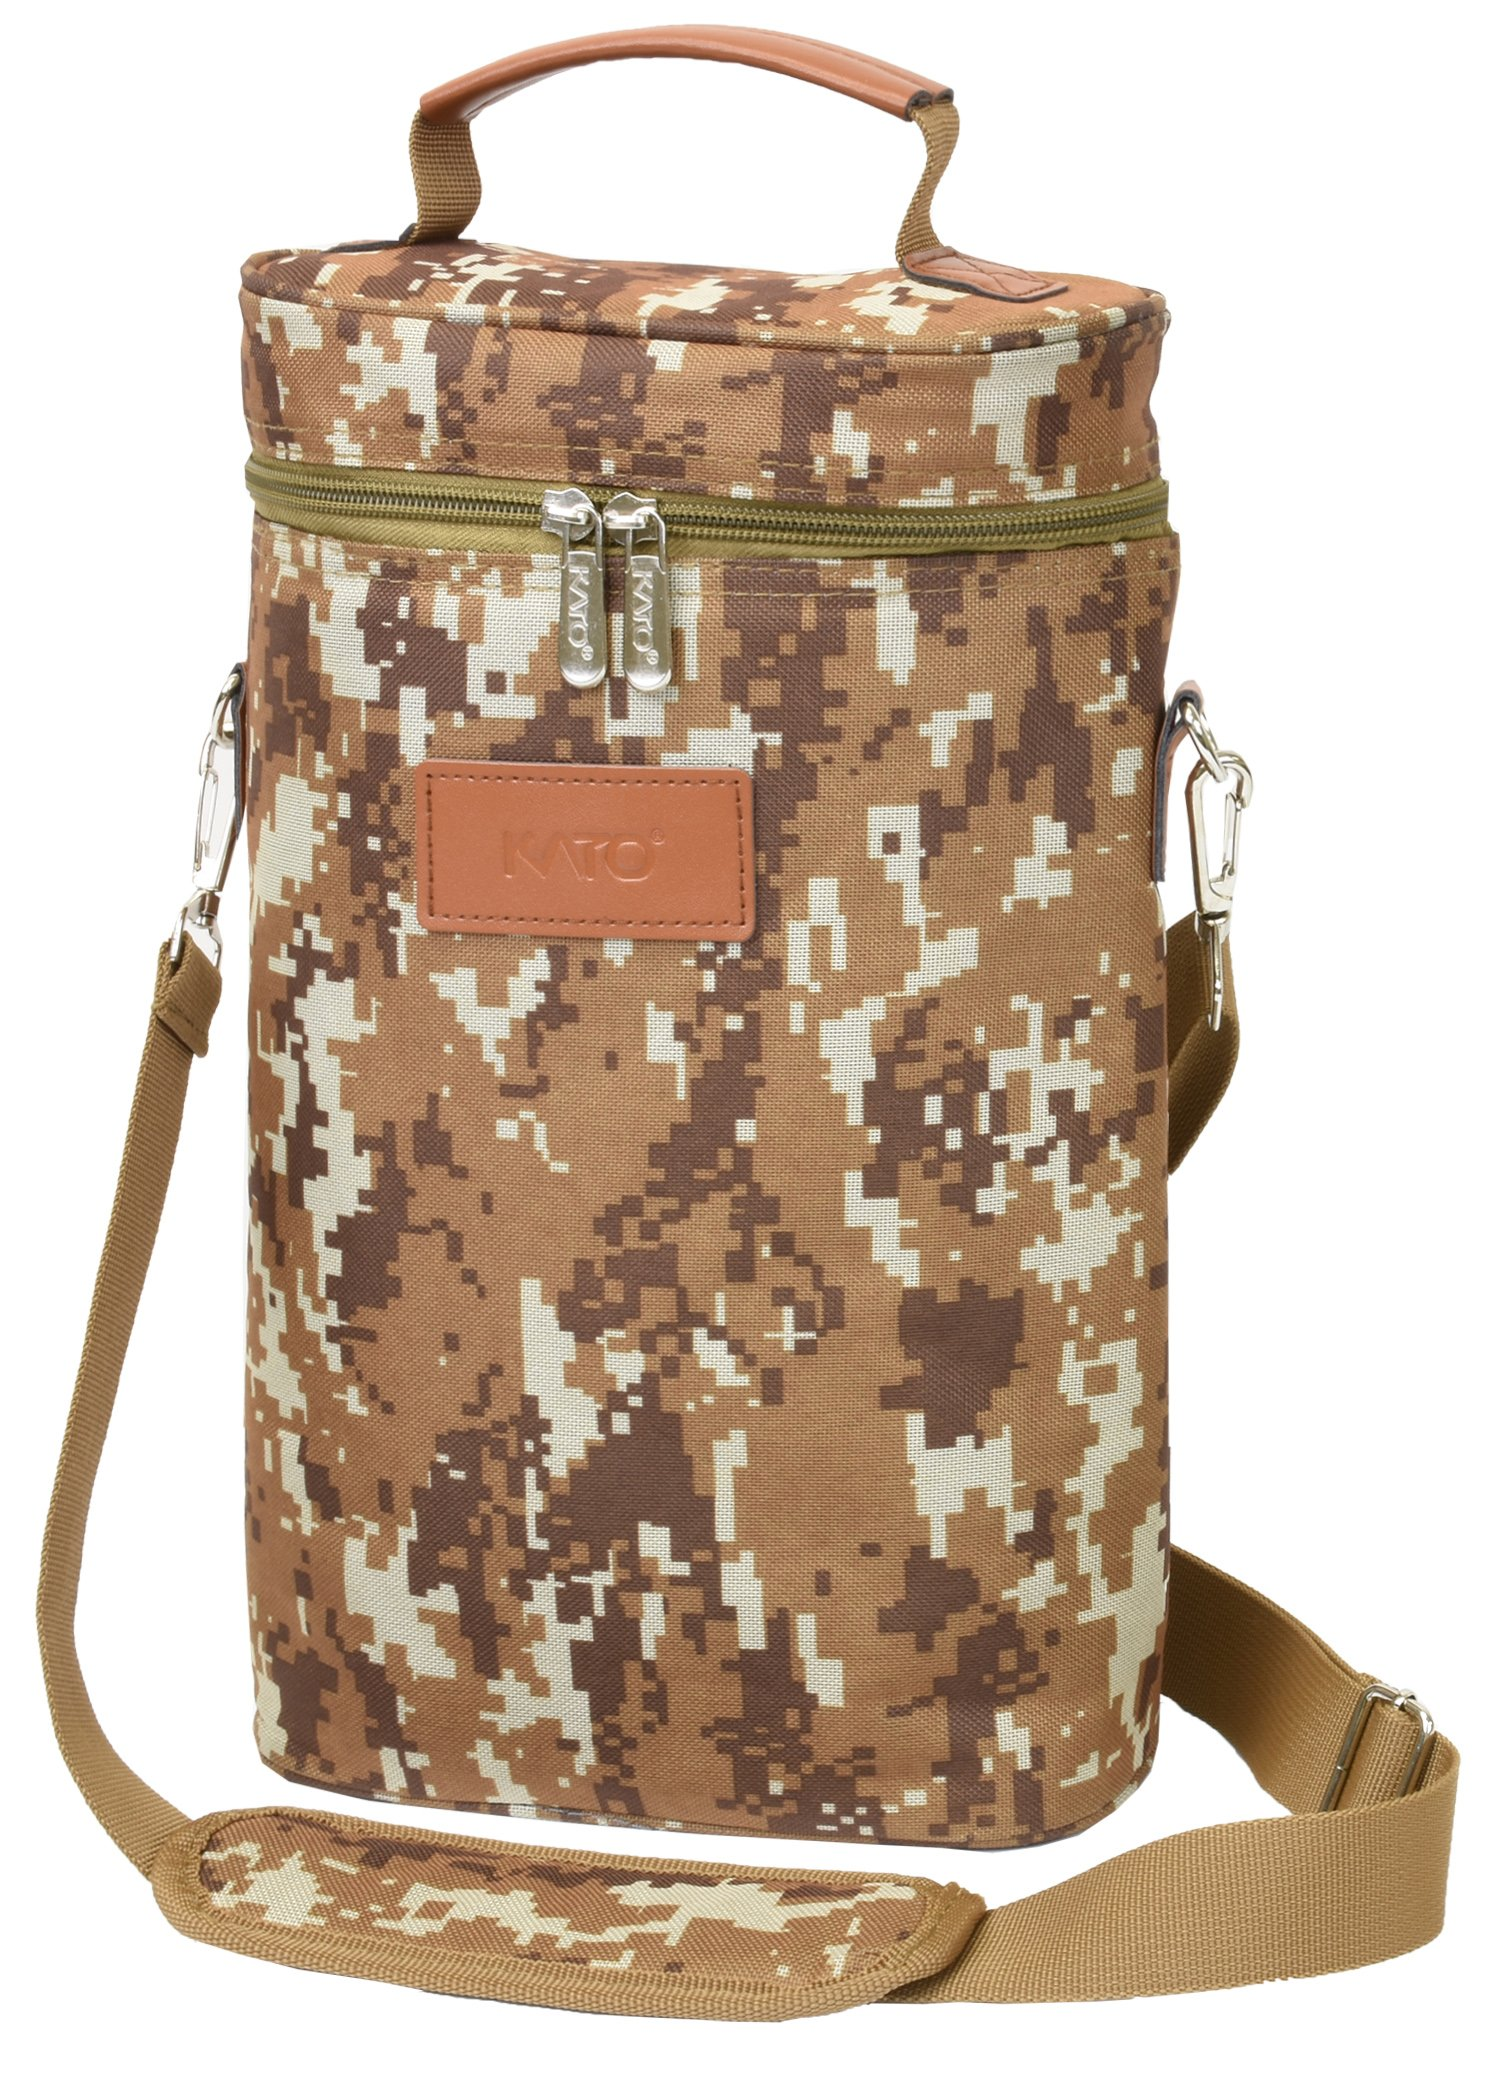 0d4266569 Get Quotations · Camouflage Military Wine Bag - Insulated 2 Bottle Travel  Padded Wine Carrying Cooler Carrier Tote with